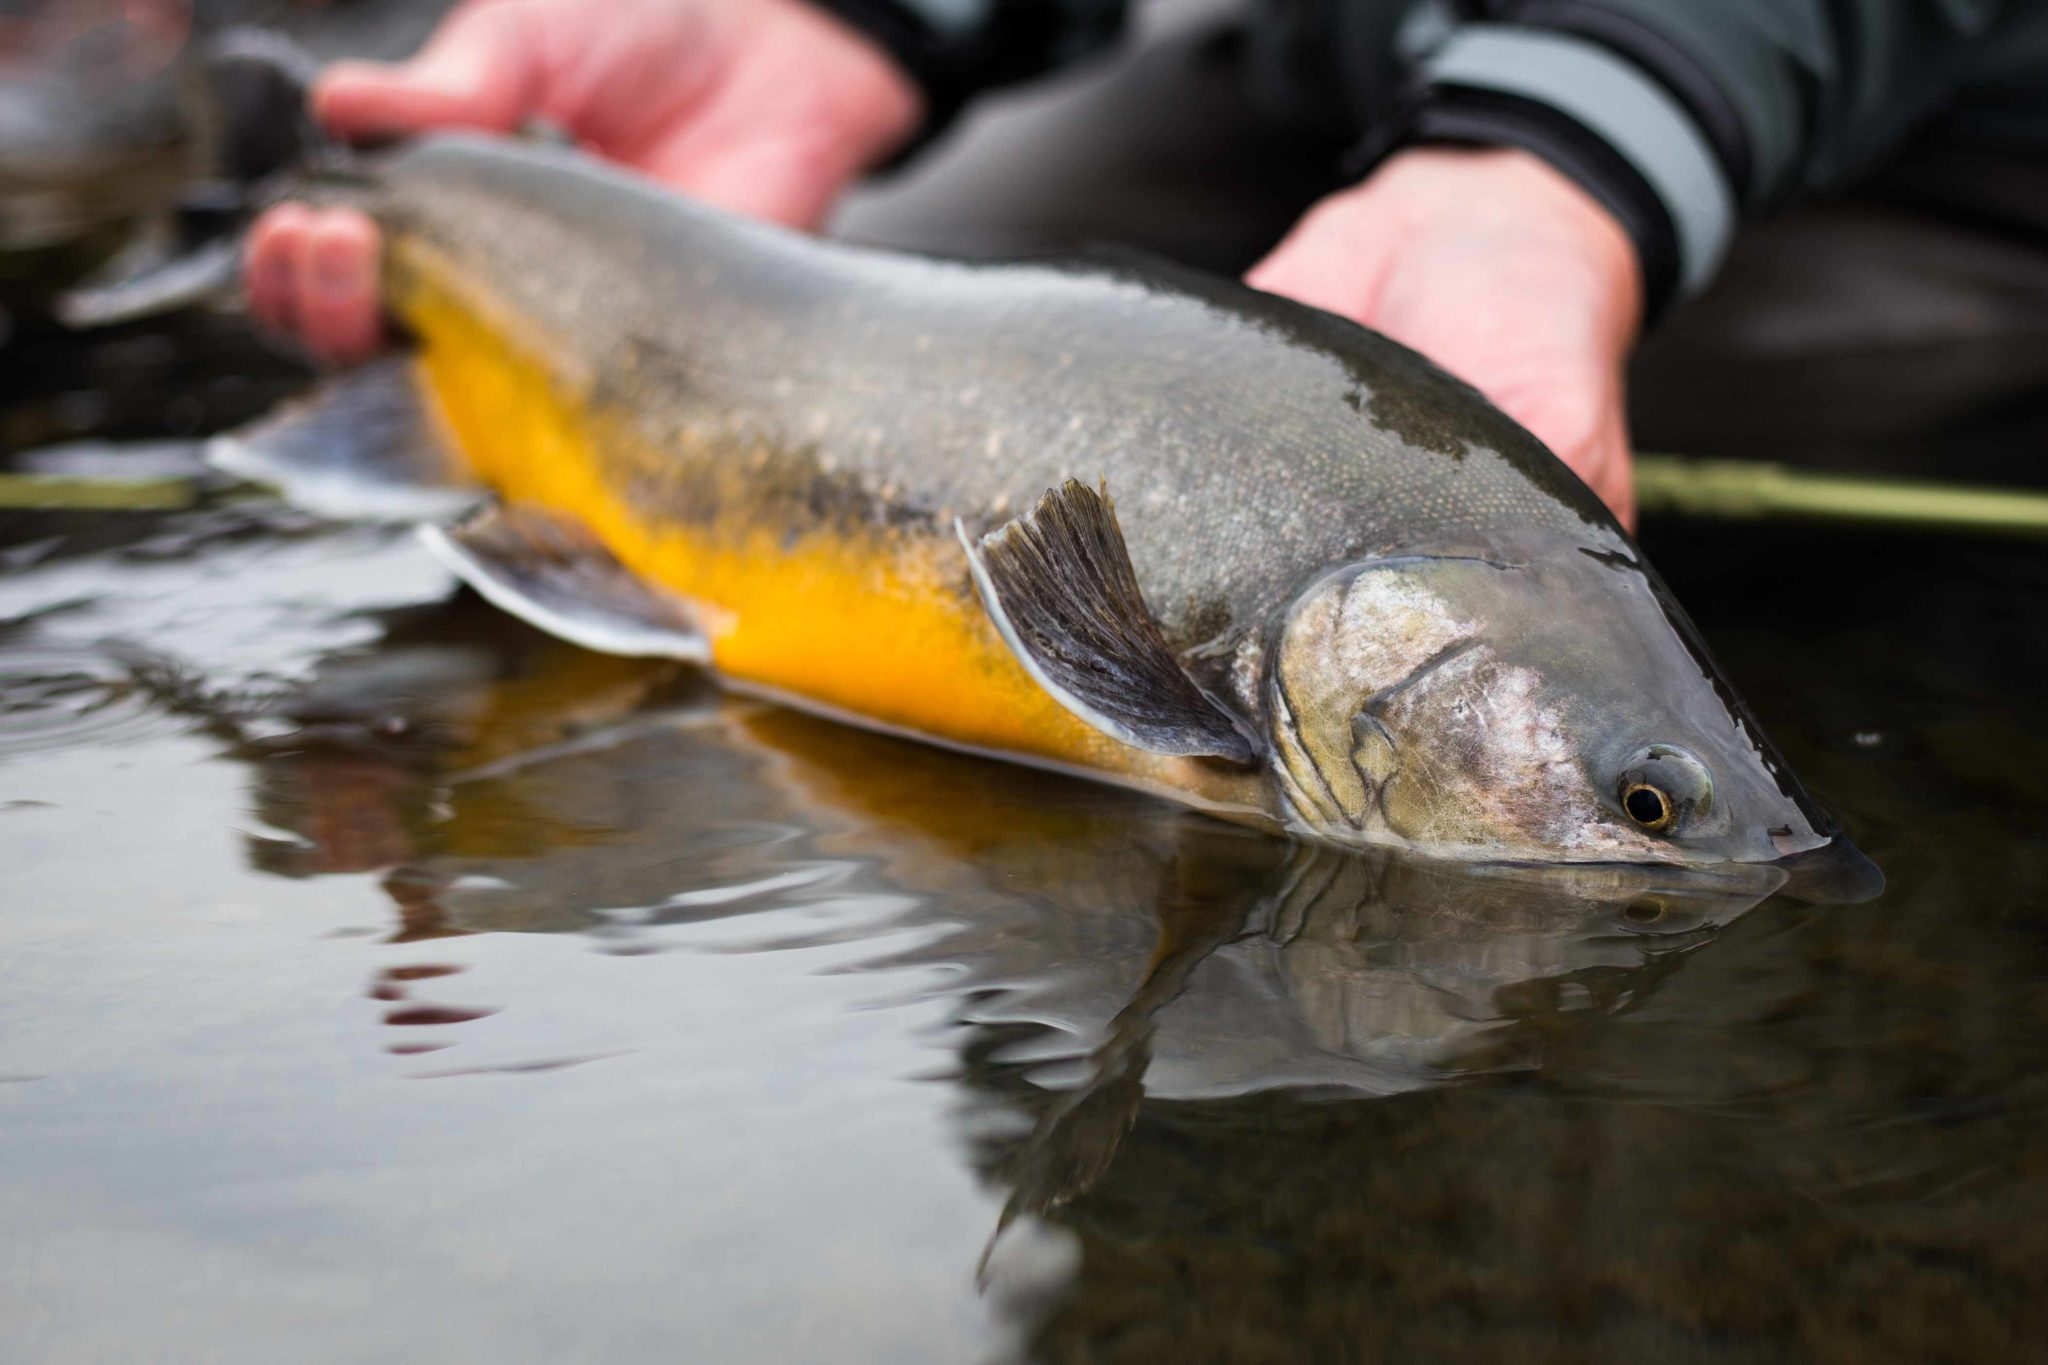 Tungnaa Iceland, char fishing Iceland, trout fishing Iceland, Fish Partner Iceland, Iceland